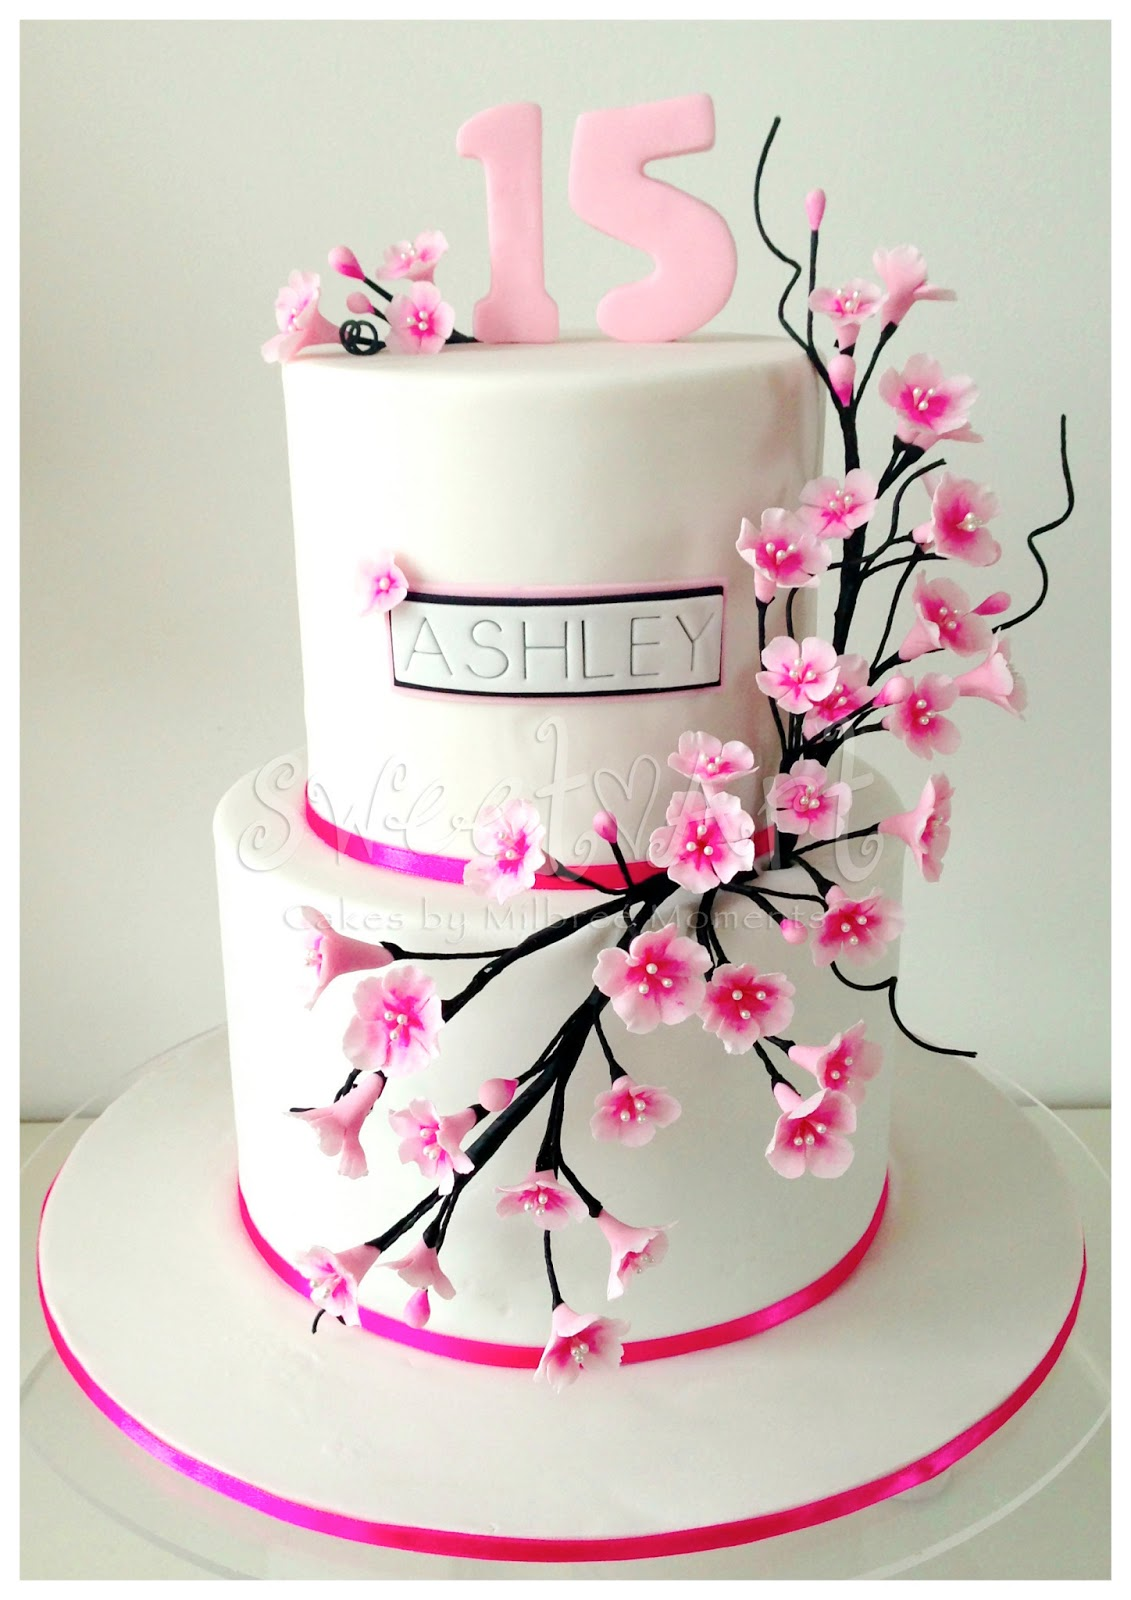 Sweet Art Cakes by Milbre Moments Ashleys Cherry Blossom 15th